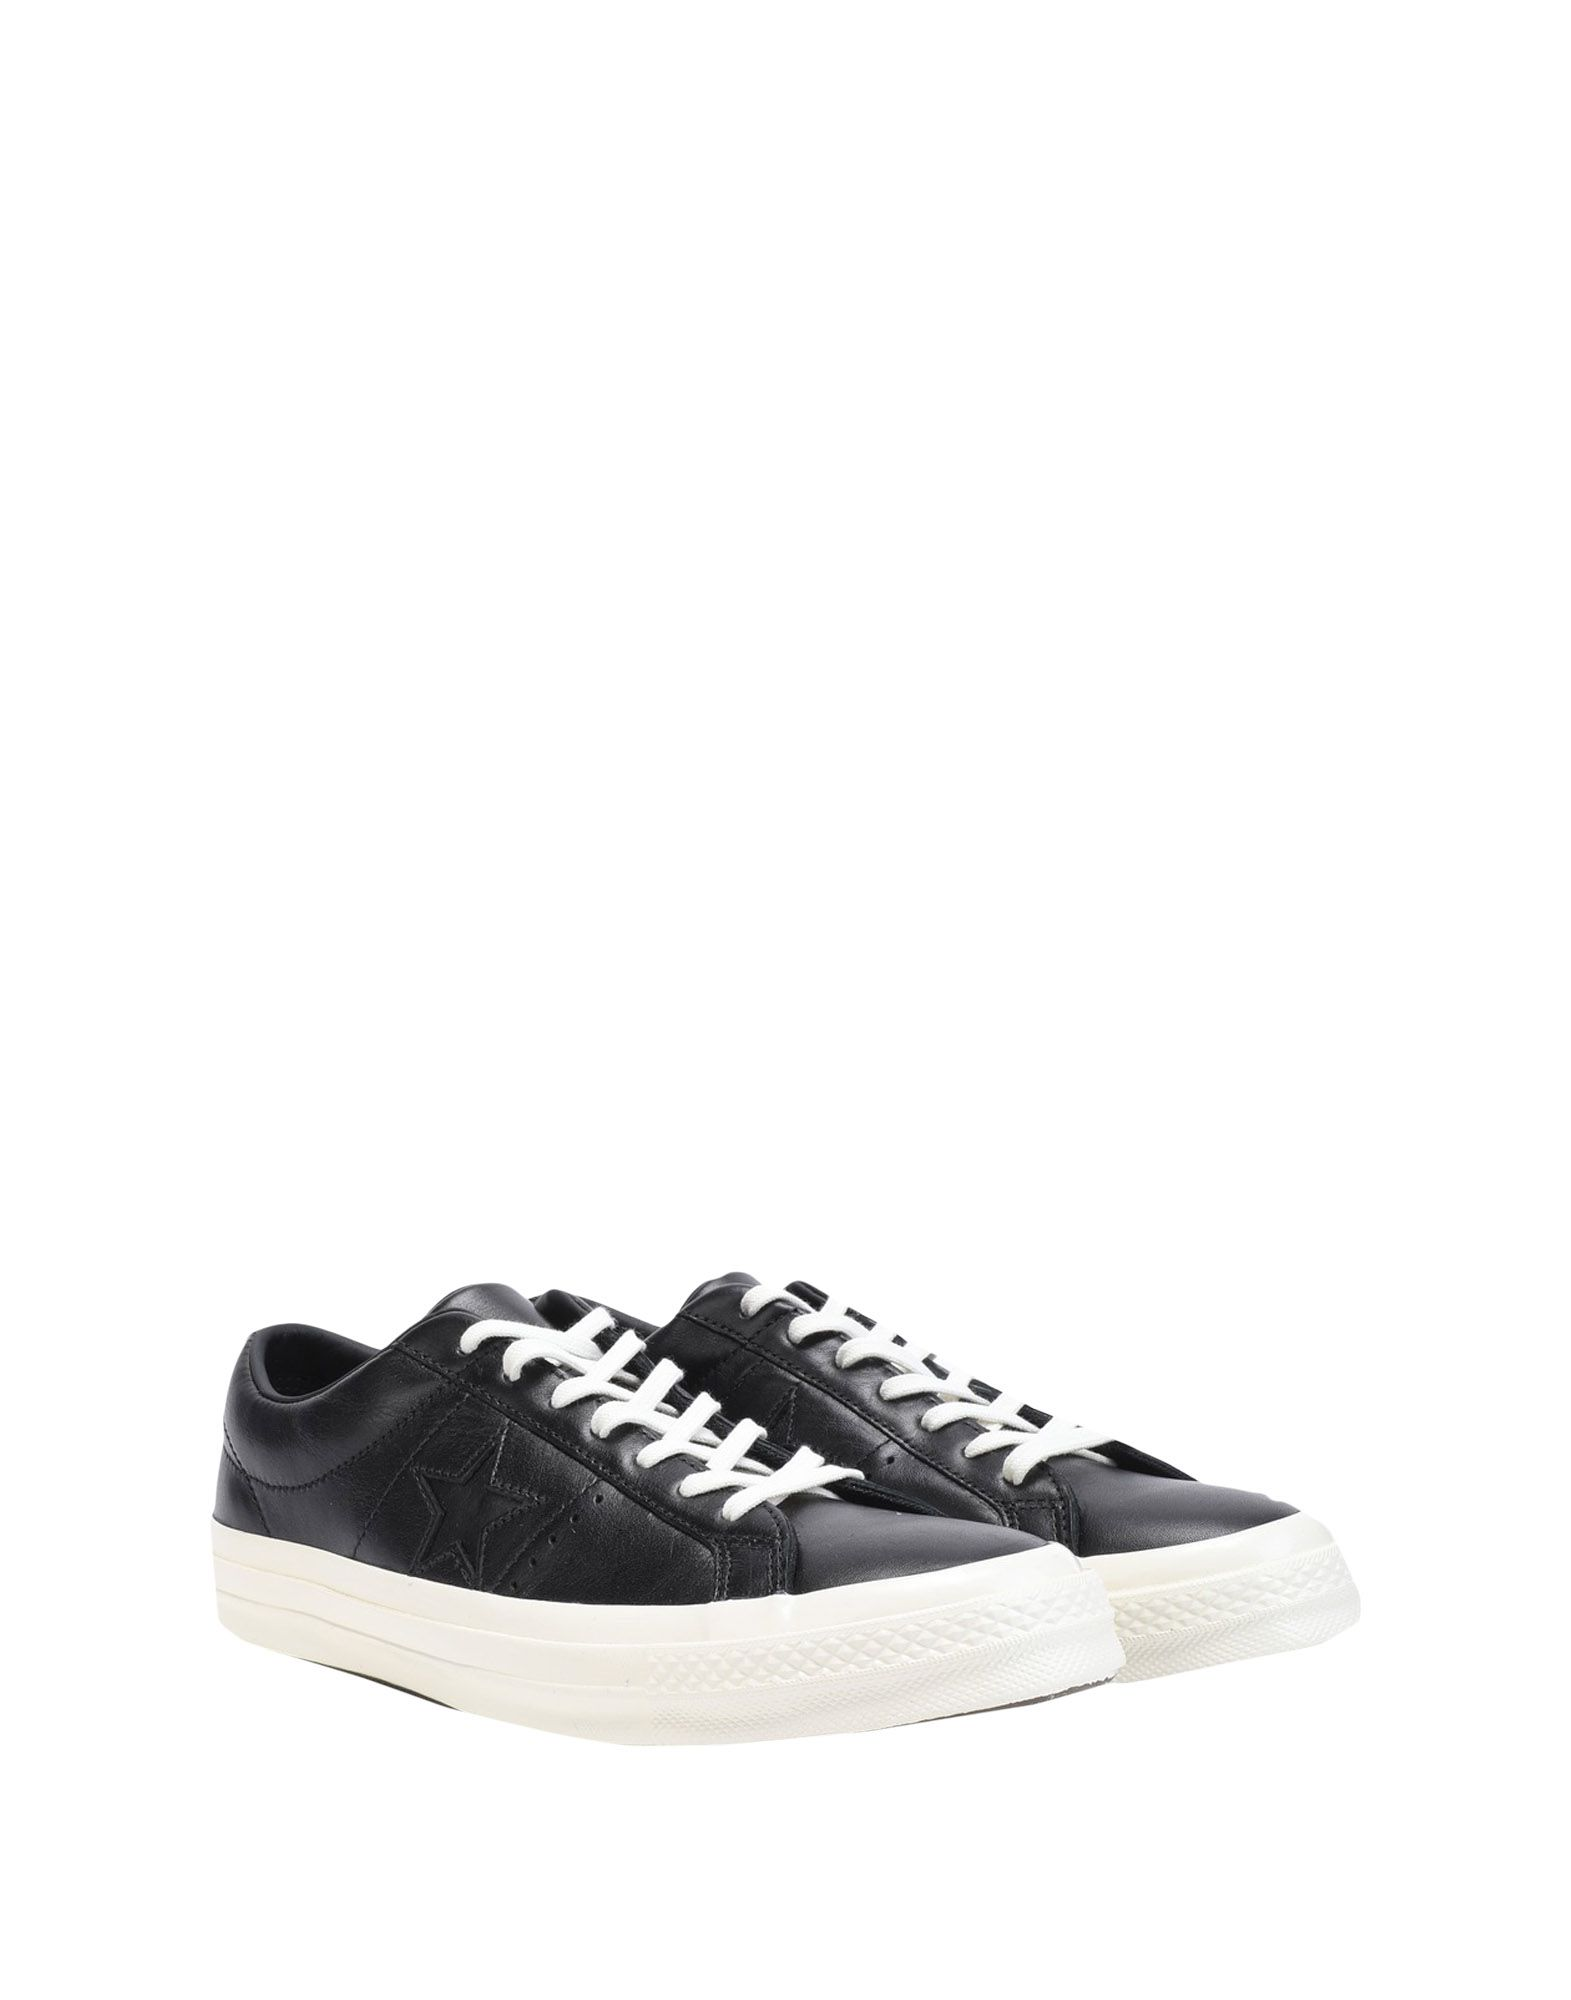 Converse All Star One Star Ox Leather Tapestry Tapestry Tapestry  11357070LA Heiße Schuhe 781efc